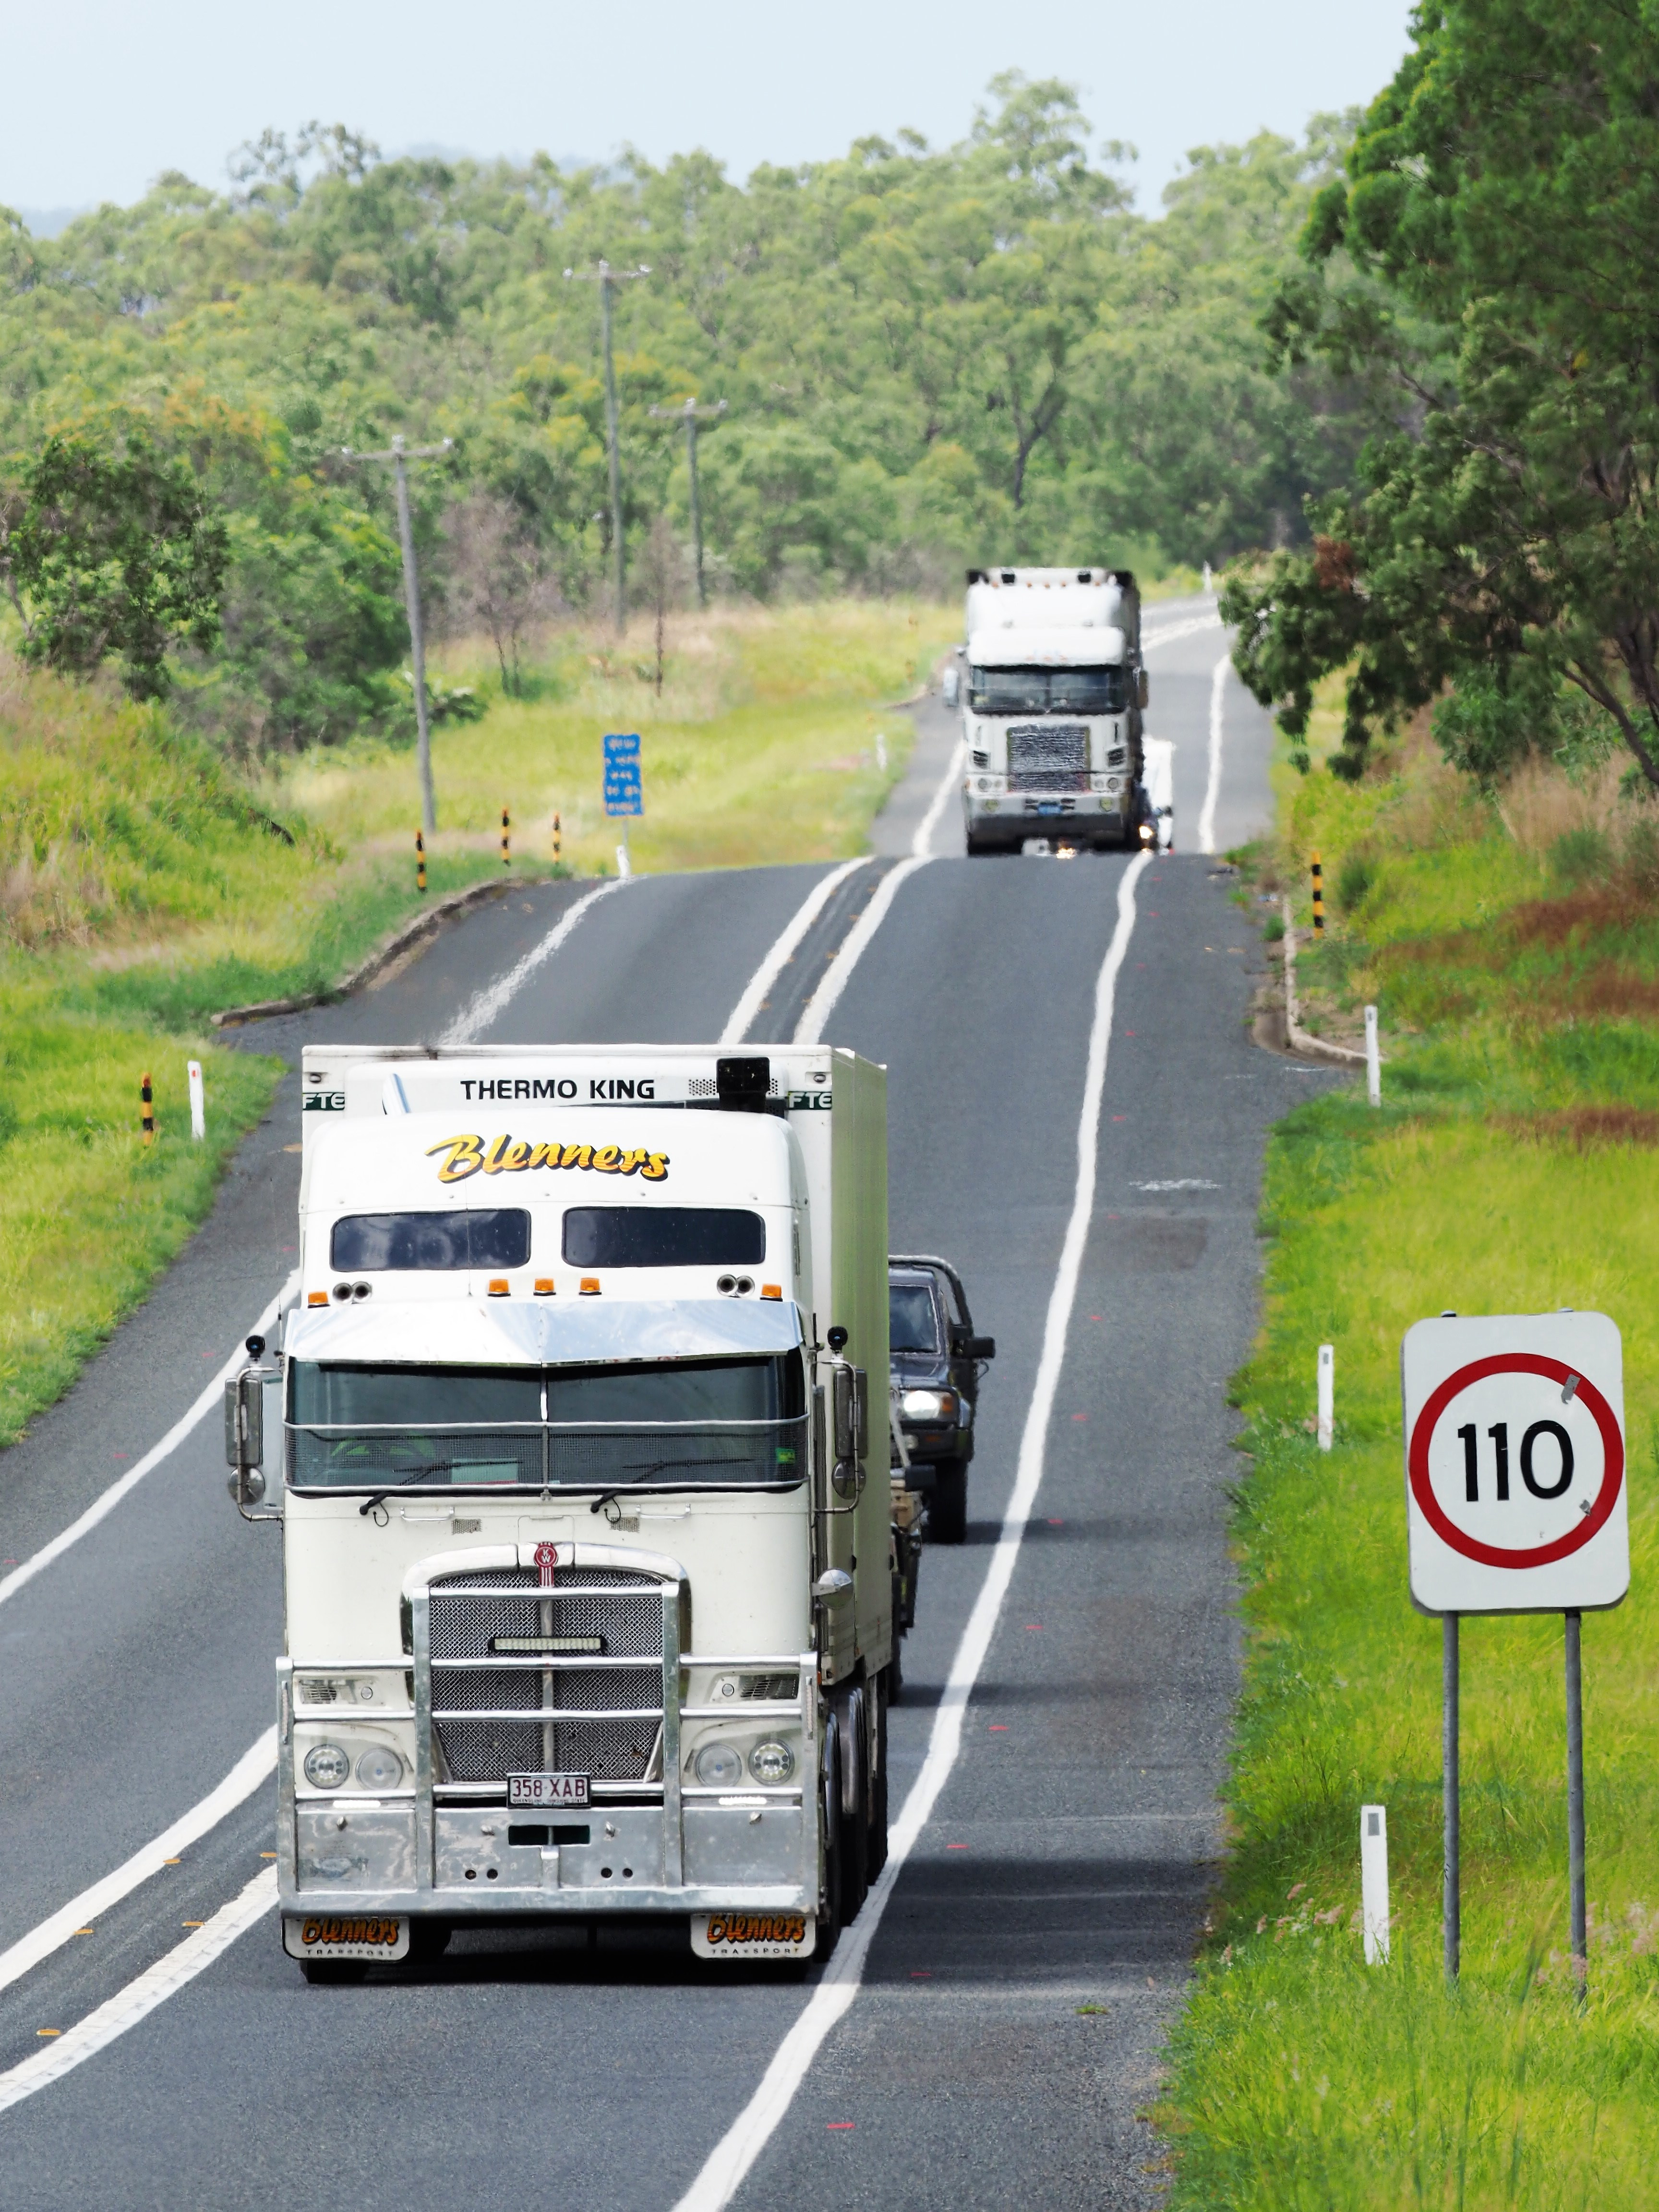 Trucks drining aling a highway in outback Australia.